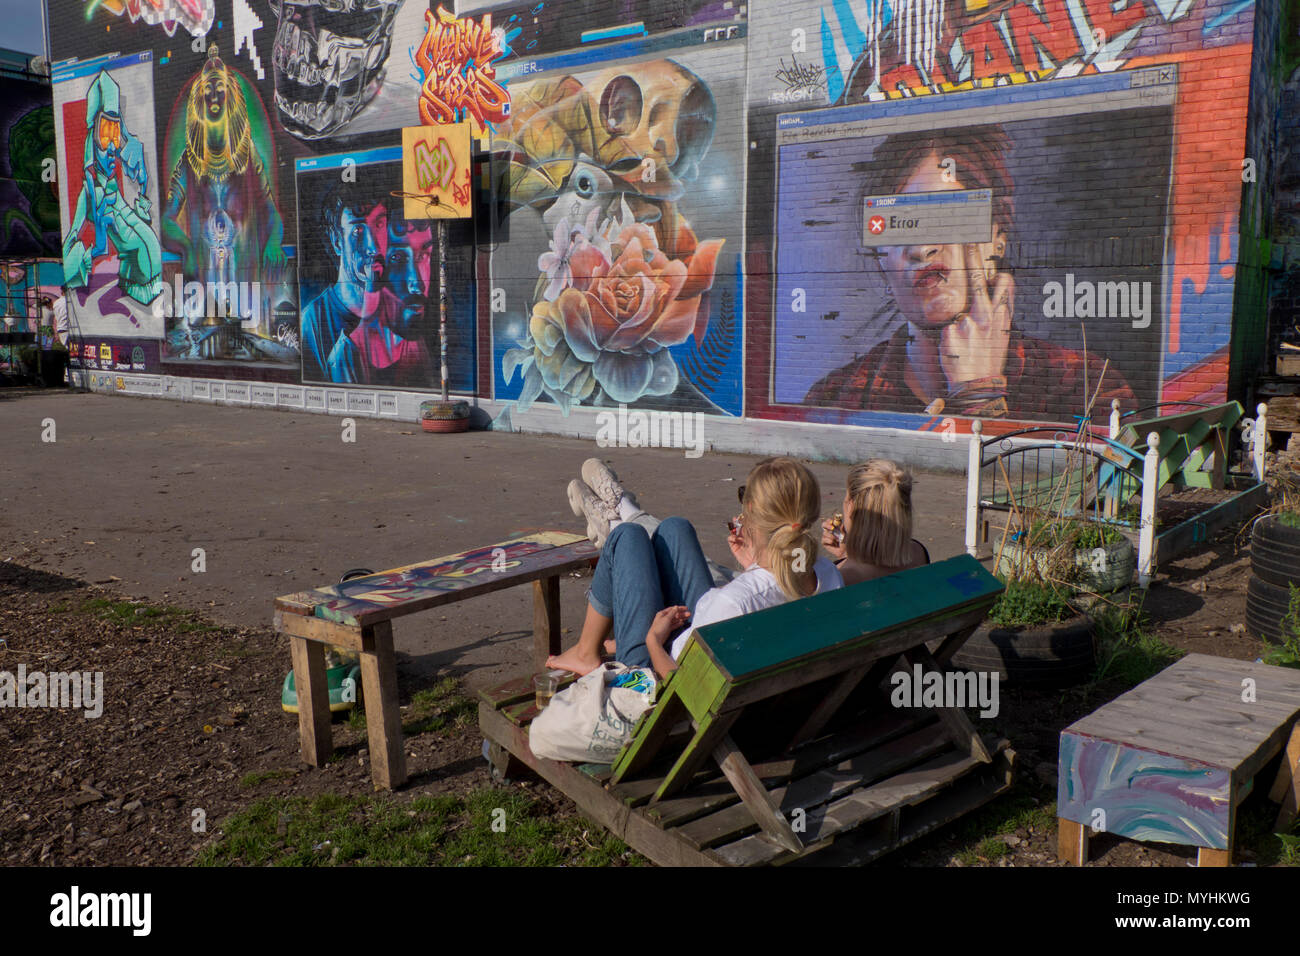 4f3d4265cc4 Visitors relaxing in the sunshine with graffiti art painting on walls of  the Nomadic communal gardens